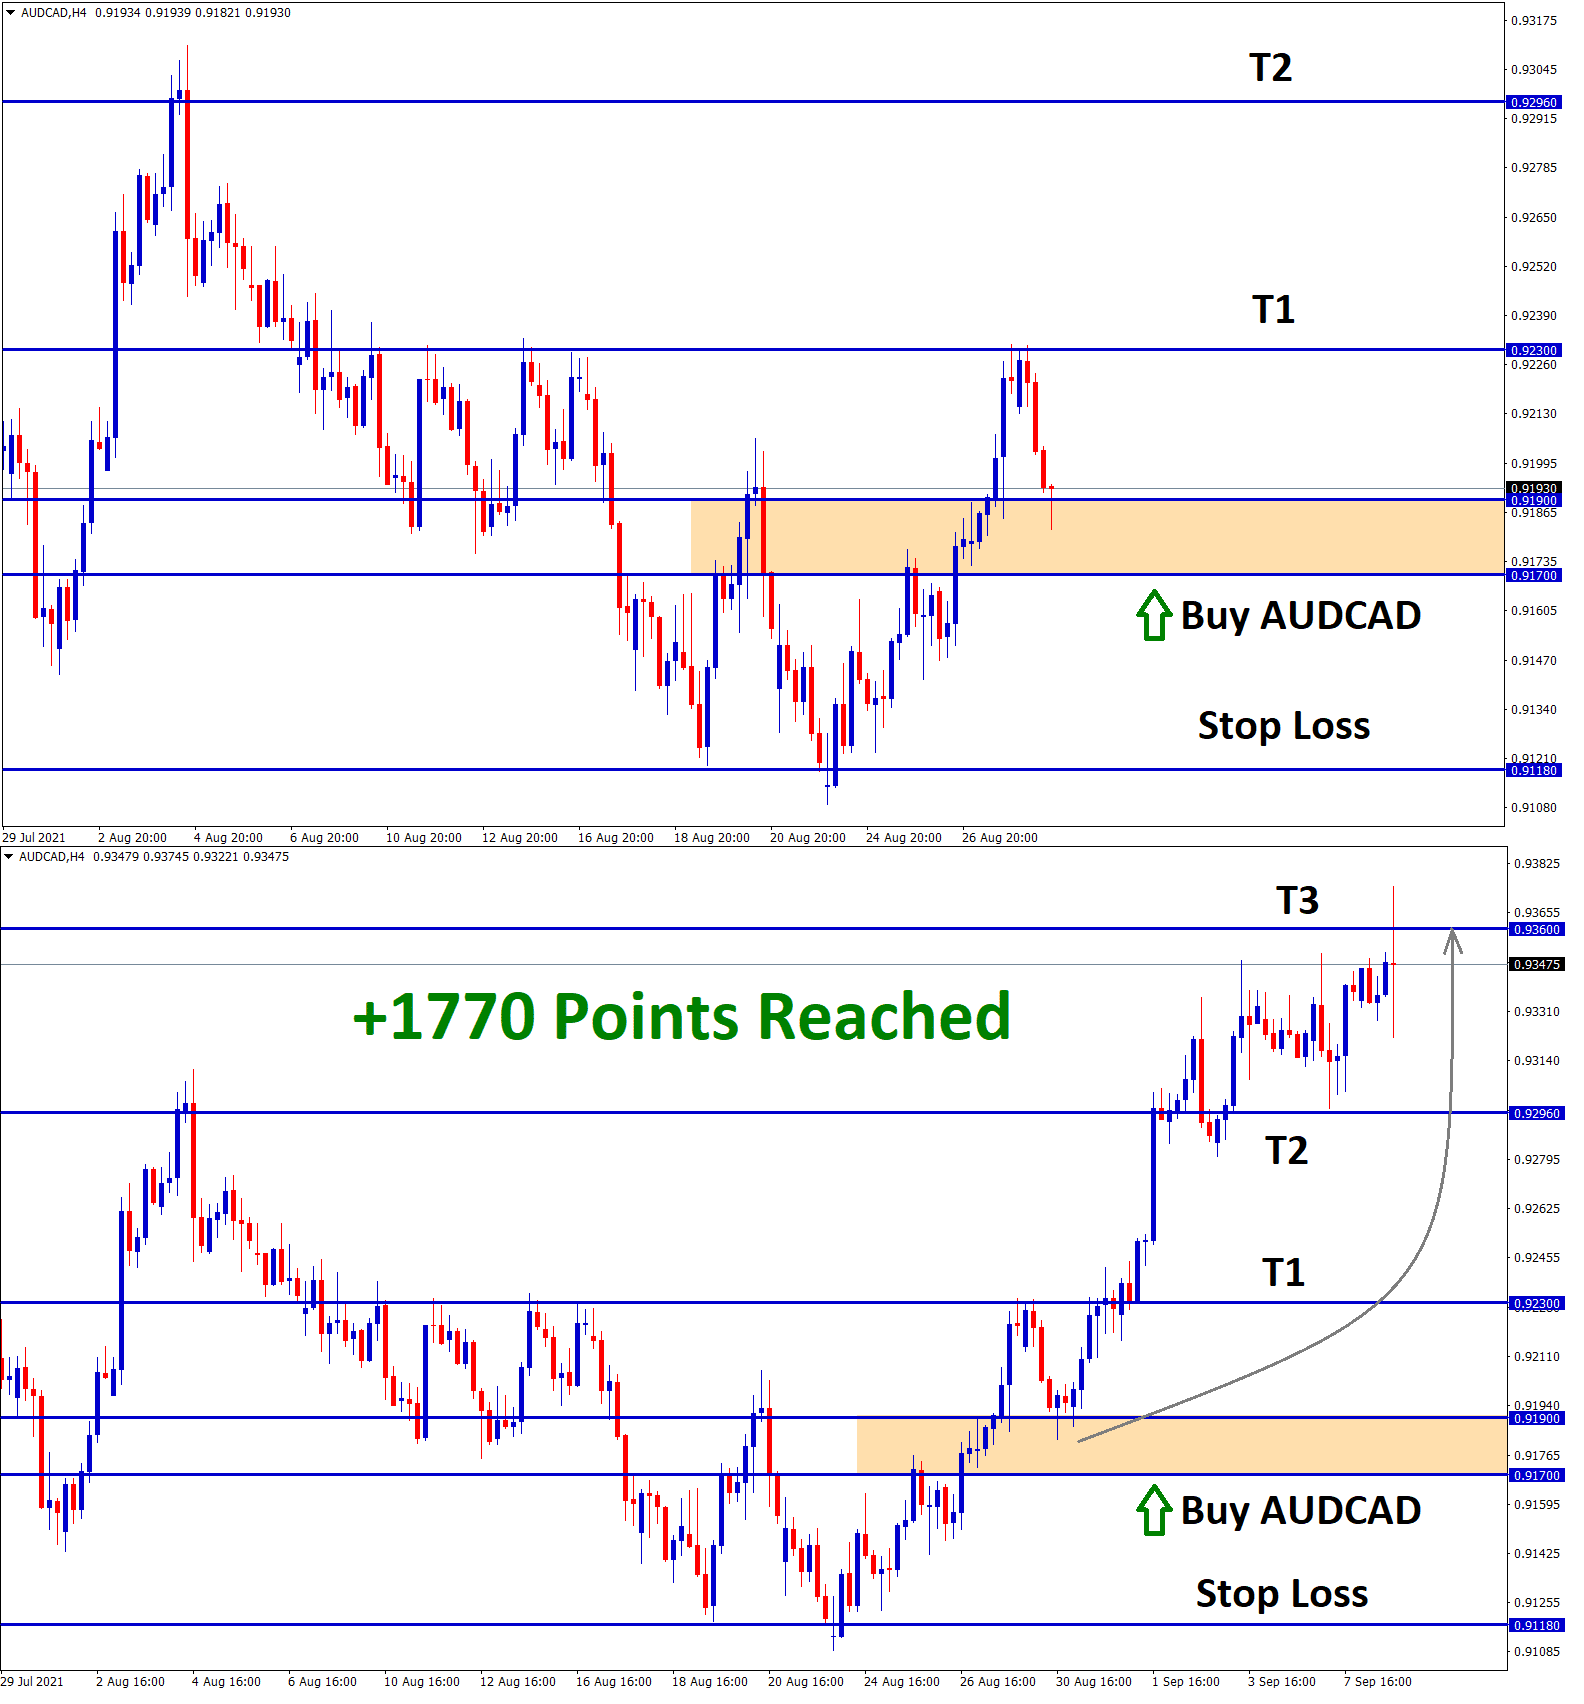 1770 Points Reached in AUDCAD Aug30